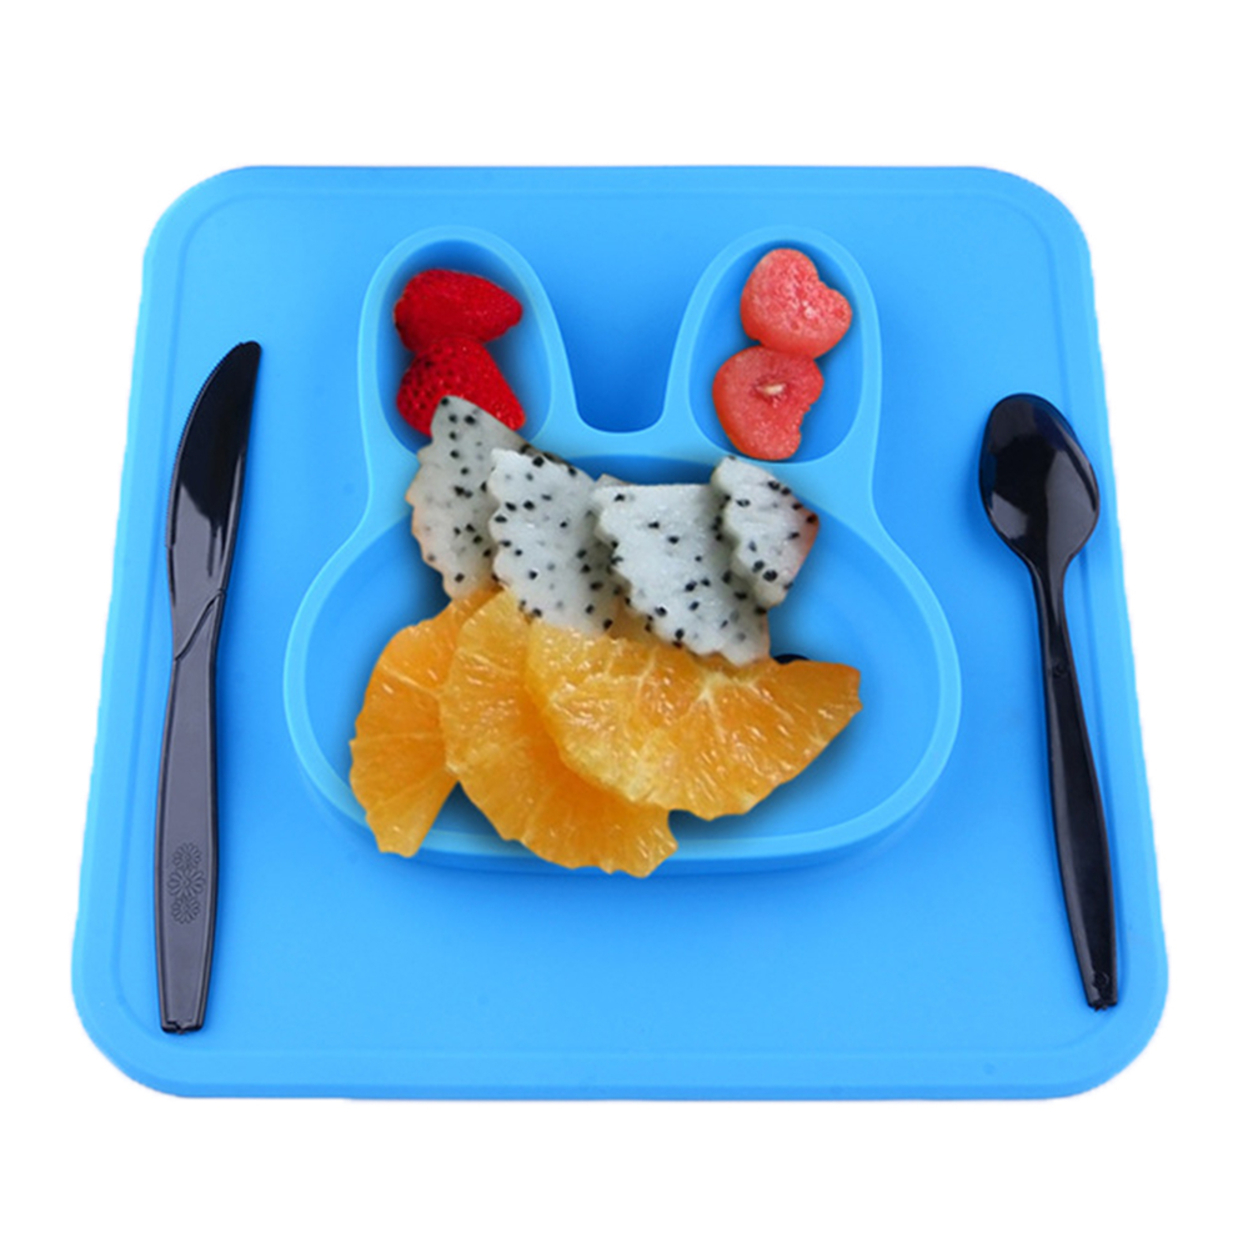 Bunny silicone plate food grade - blue 5a067903cd5c8624d8611f13